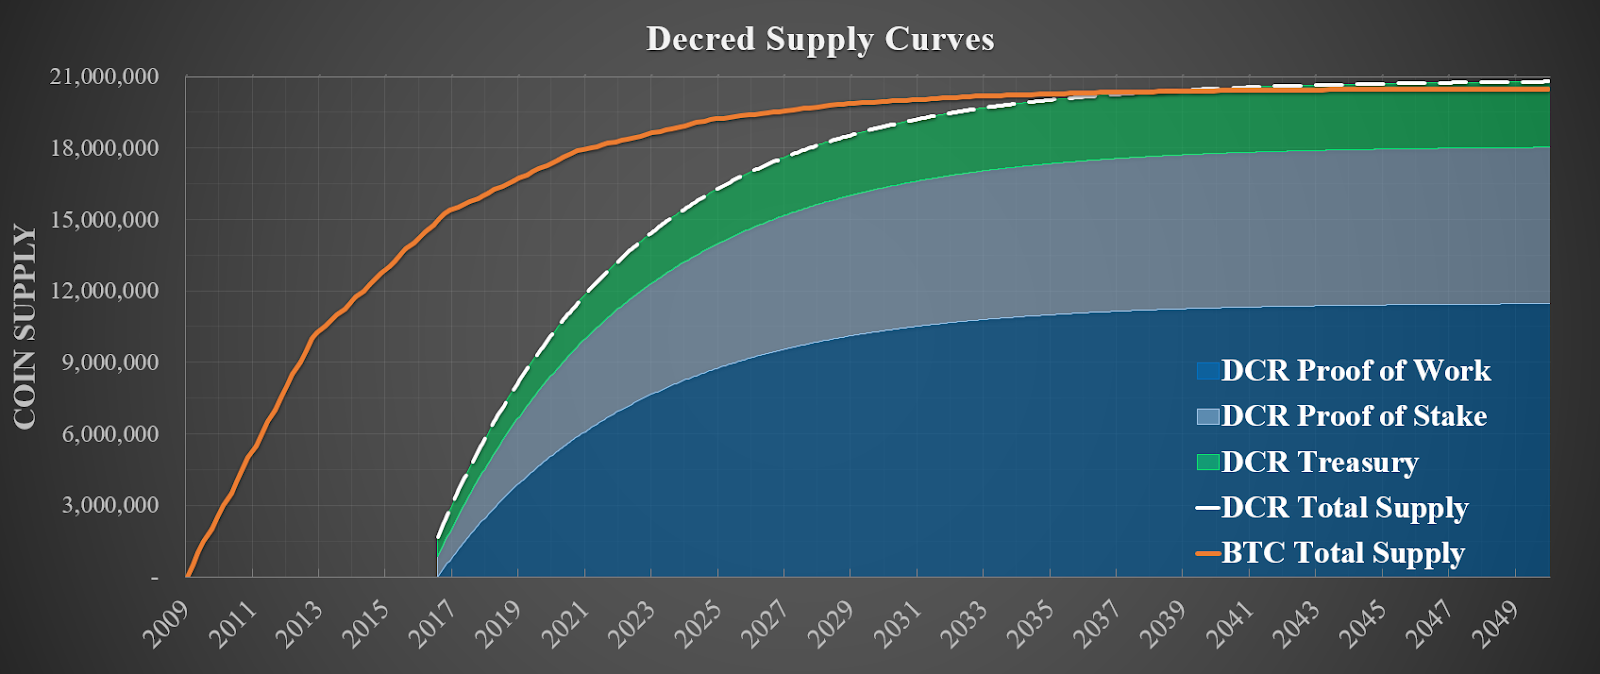 Decred Supply Curves